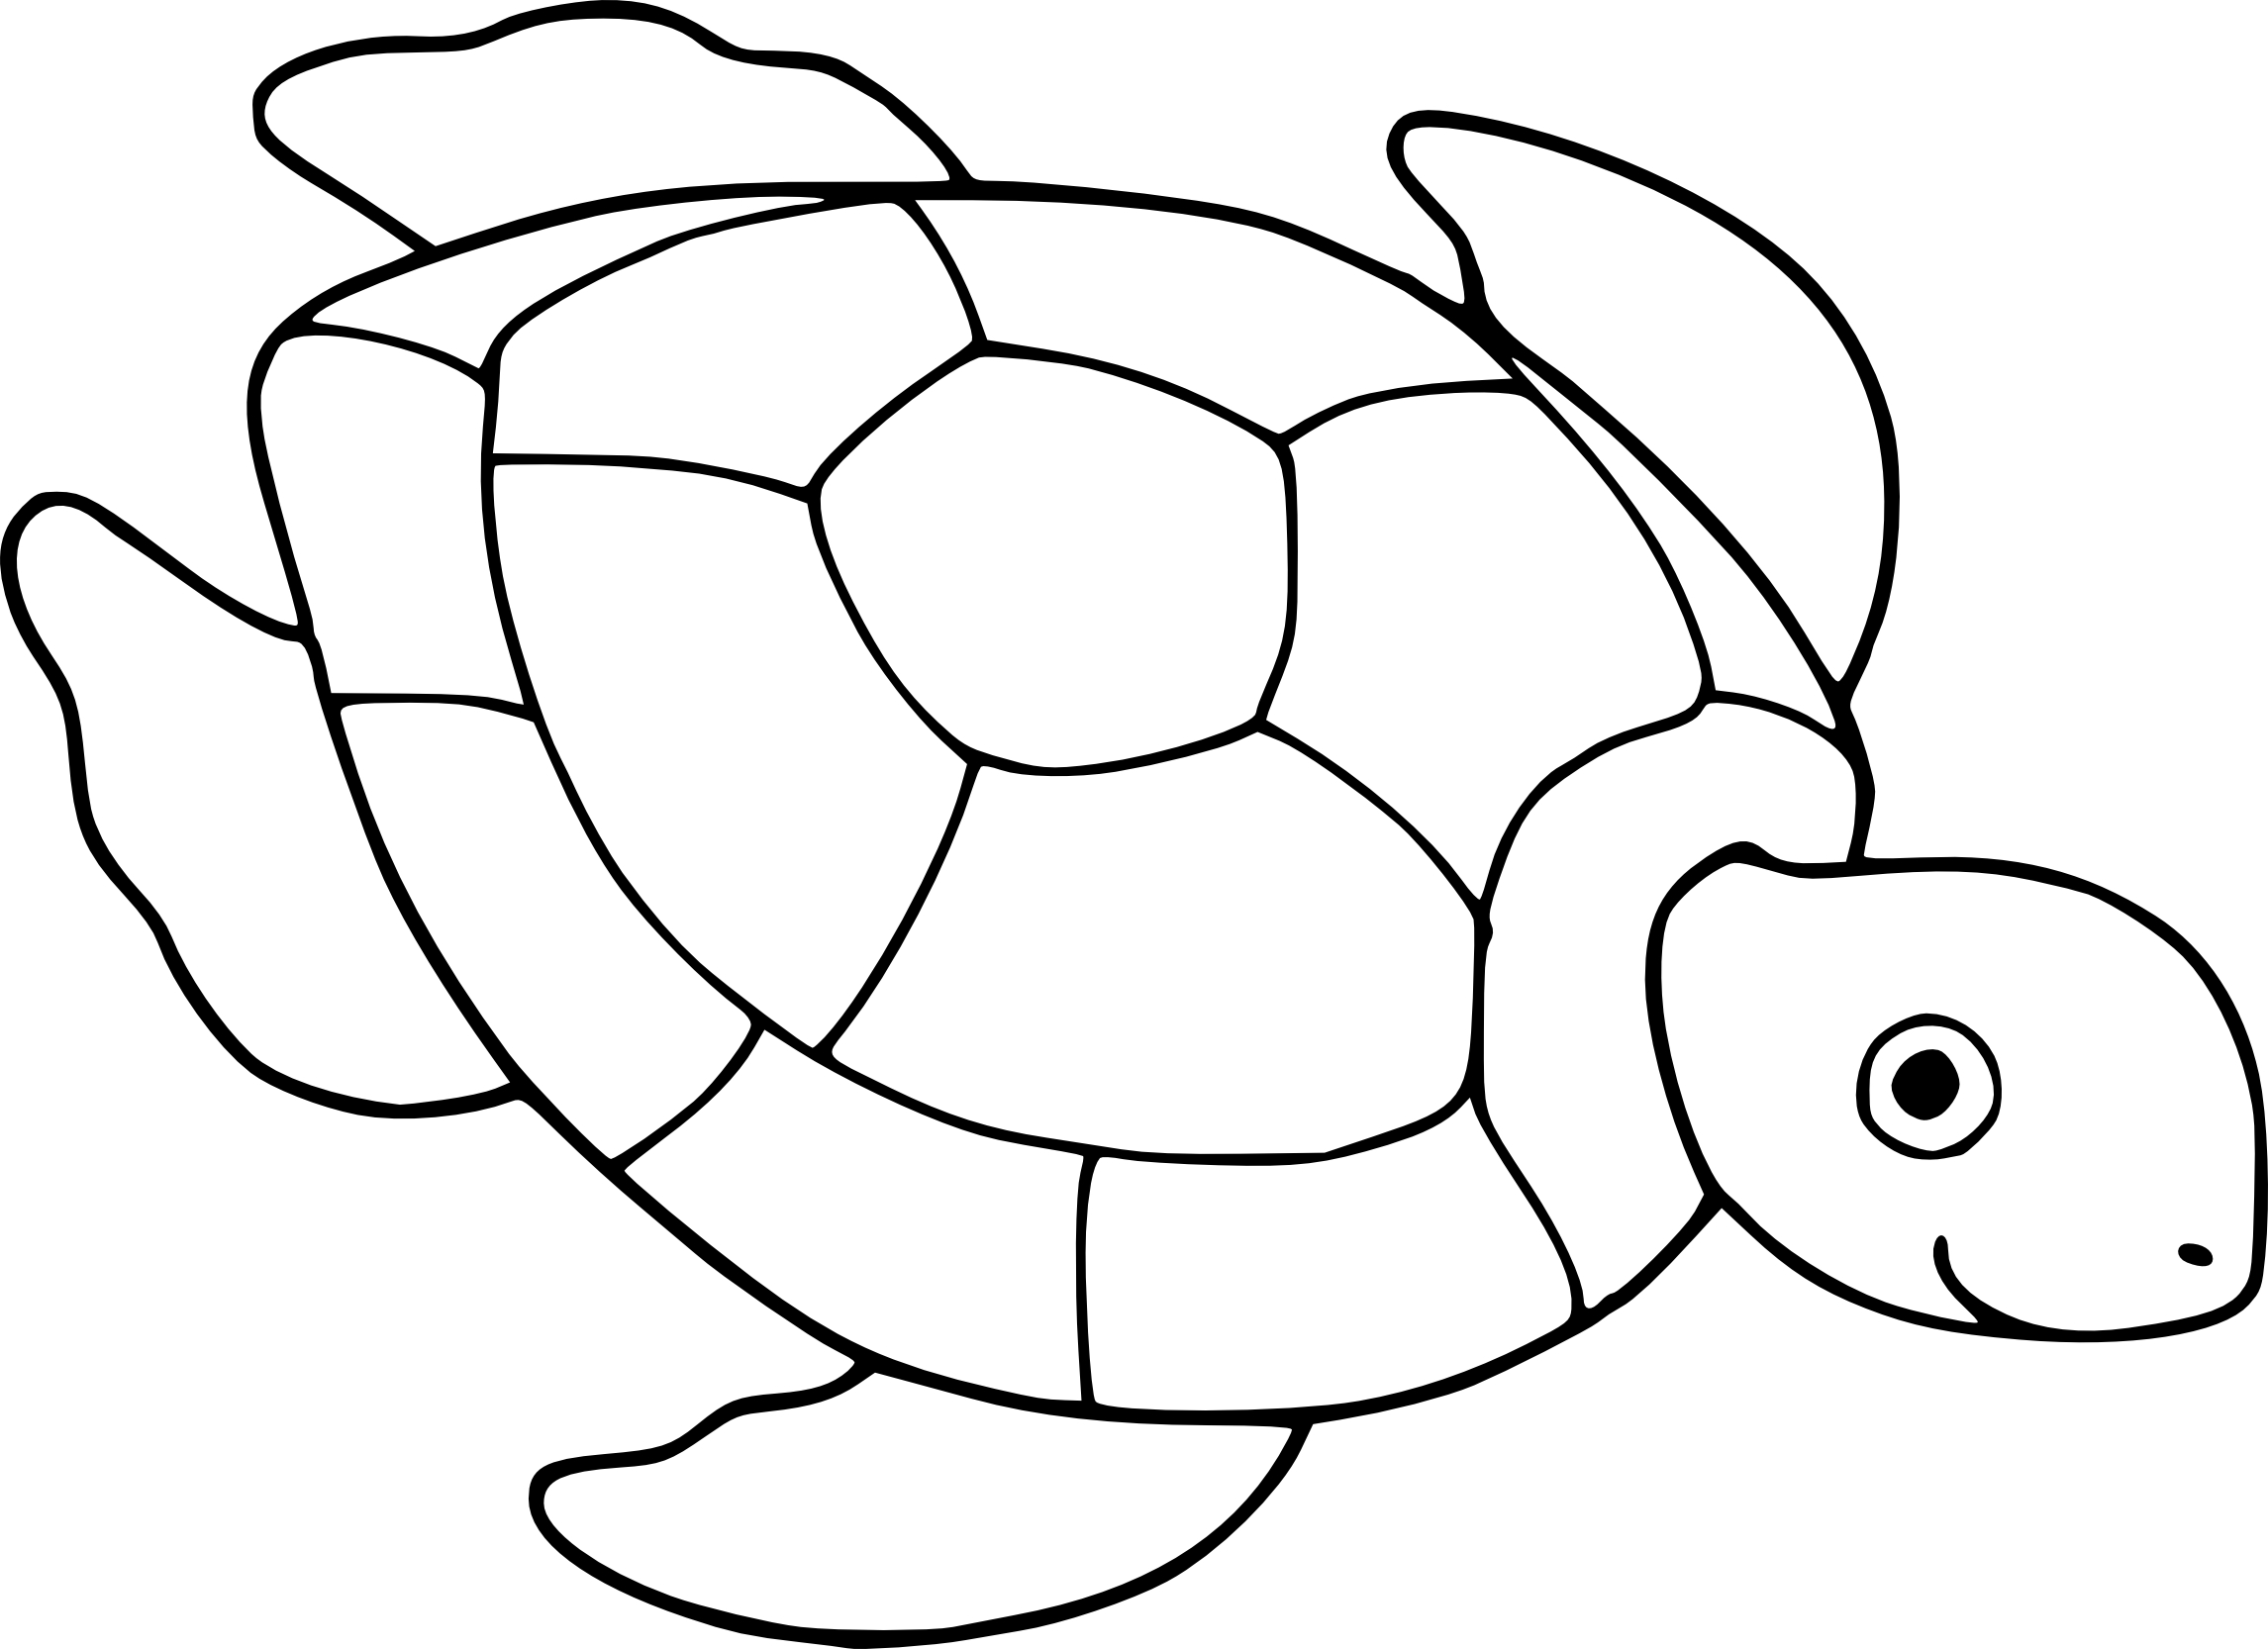 L gant photo tortue de mer a imprimer - Coloriage tortue ...